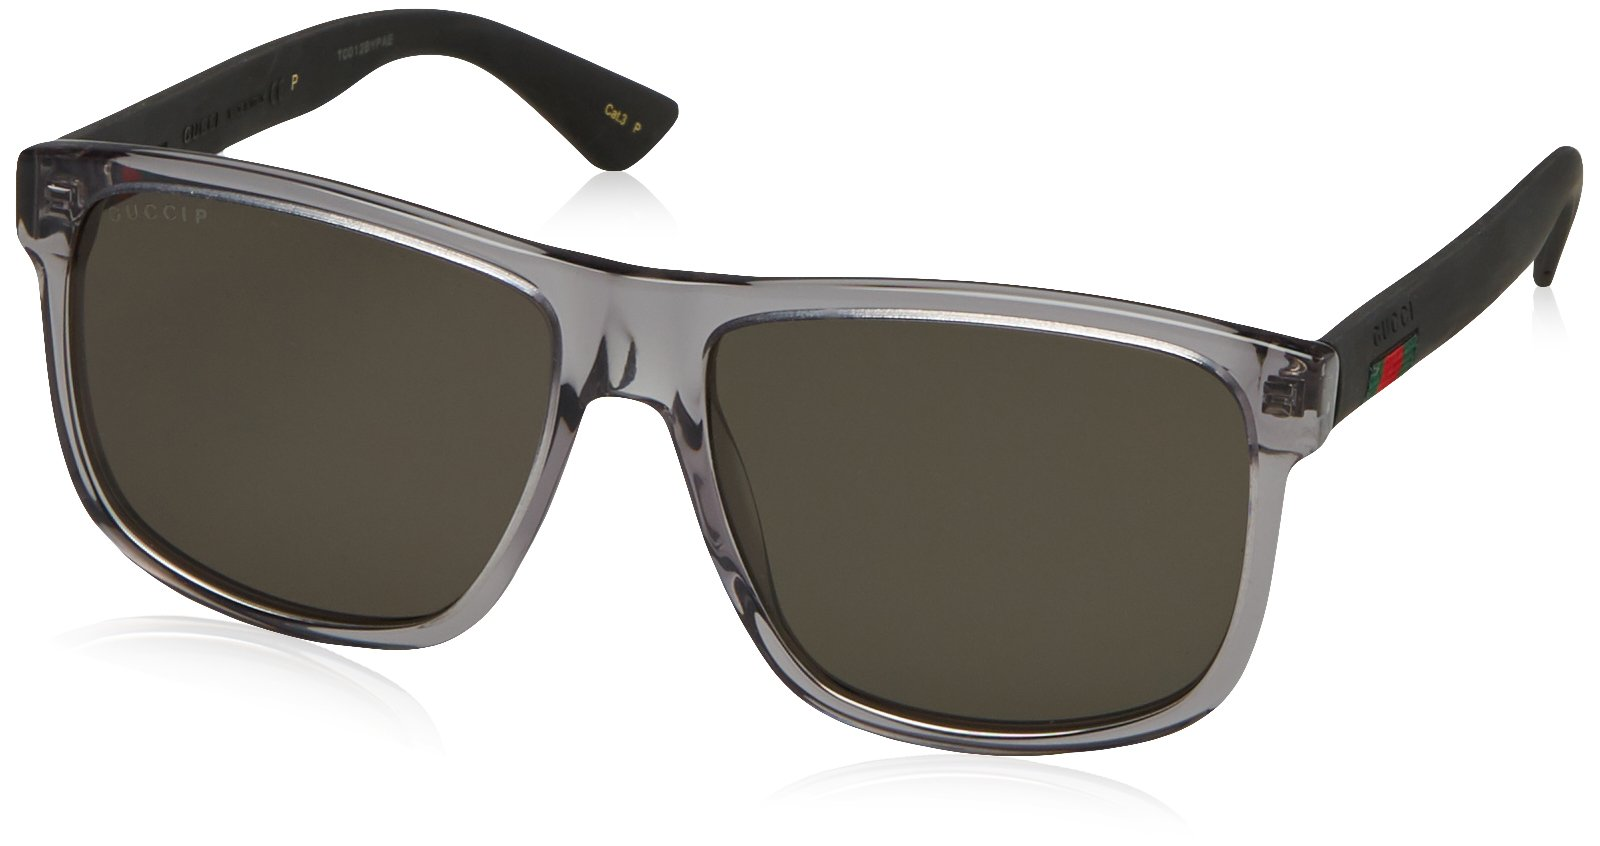 Gucci GG0010S-004 Rectangular / Square Sunglasses Grey/Grey Lens by Gucci